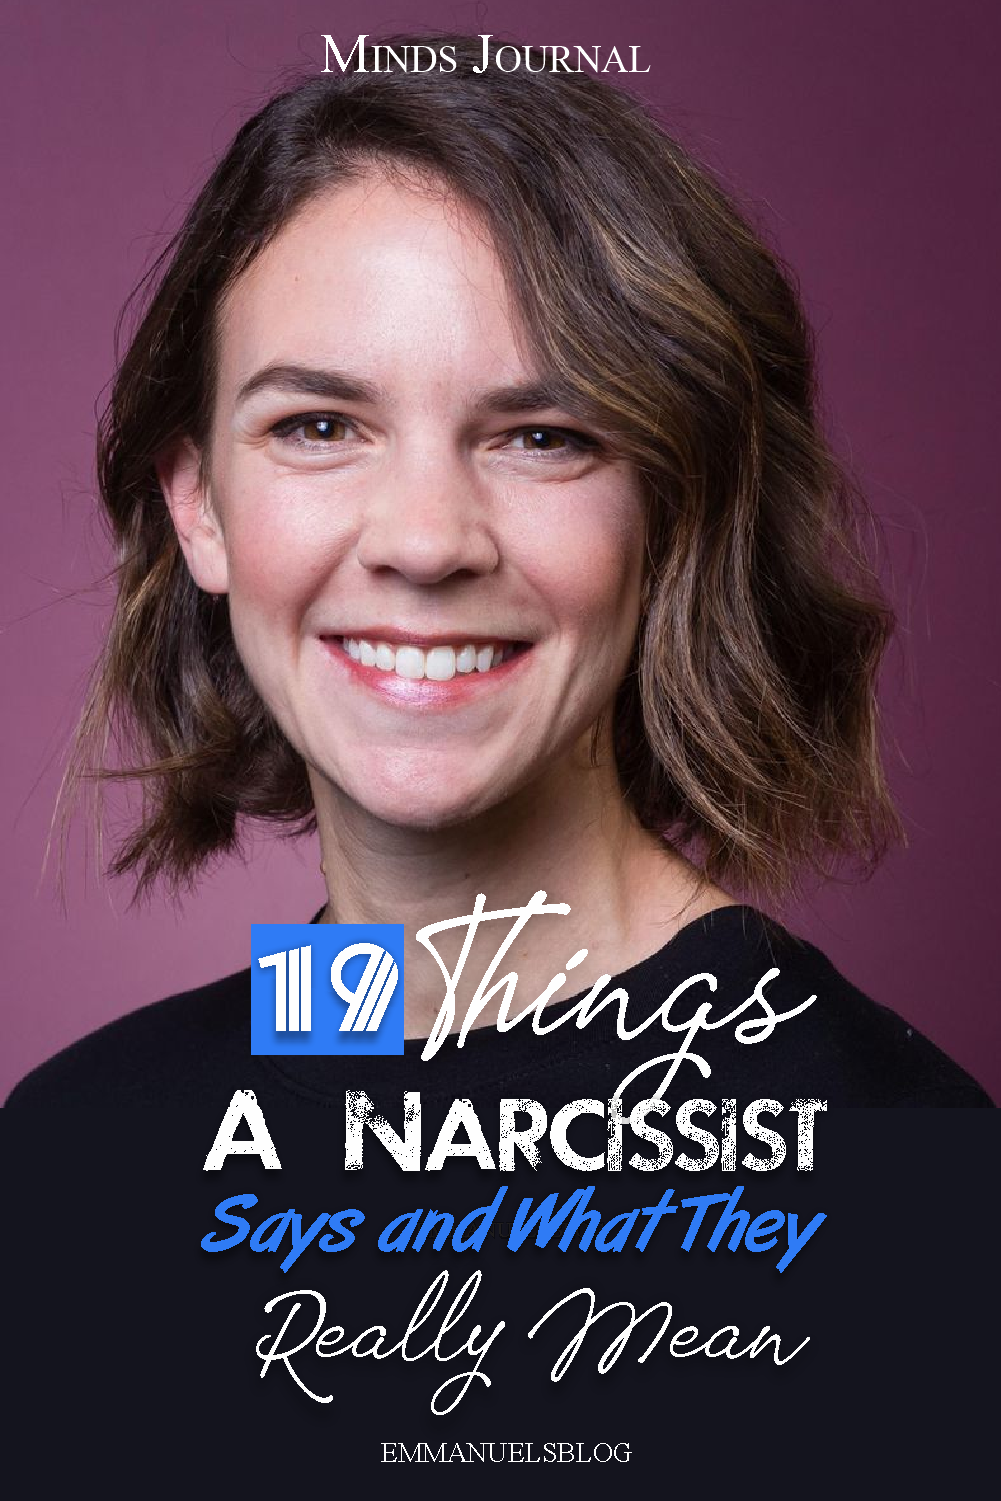 19 Things A Narcissist Says and What They Really Mean